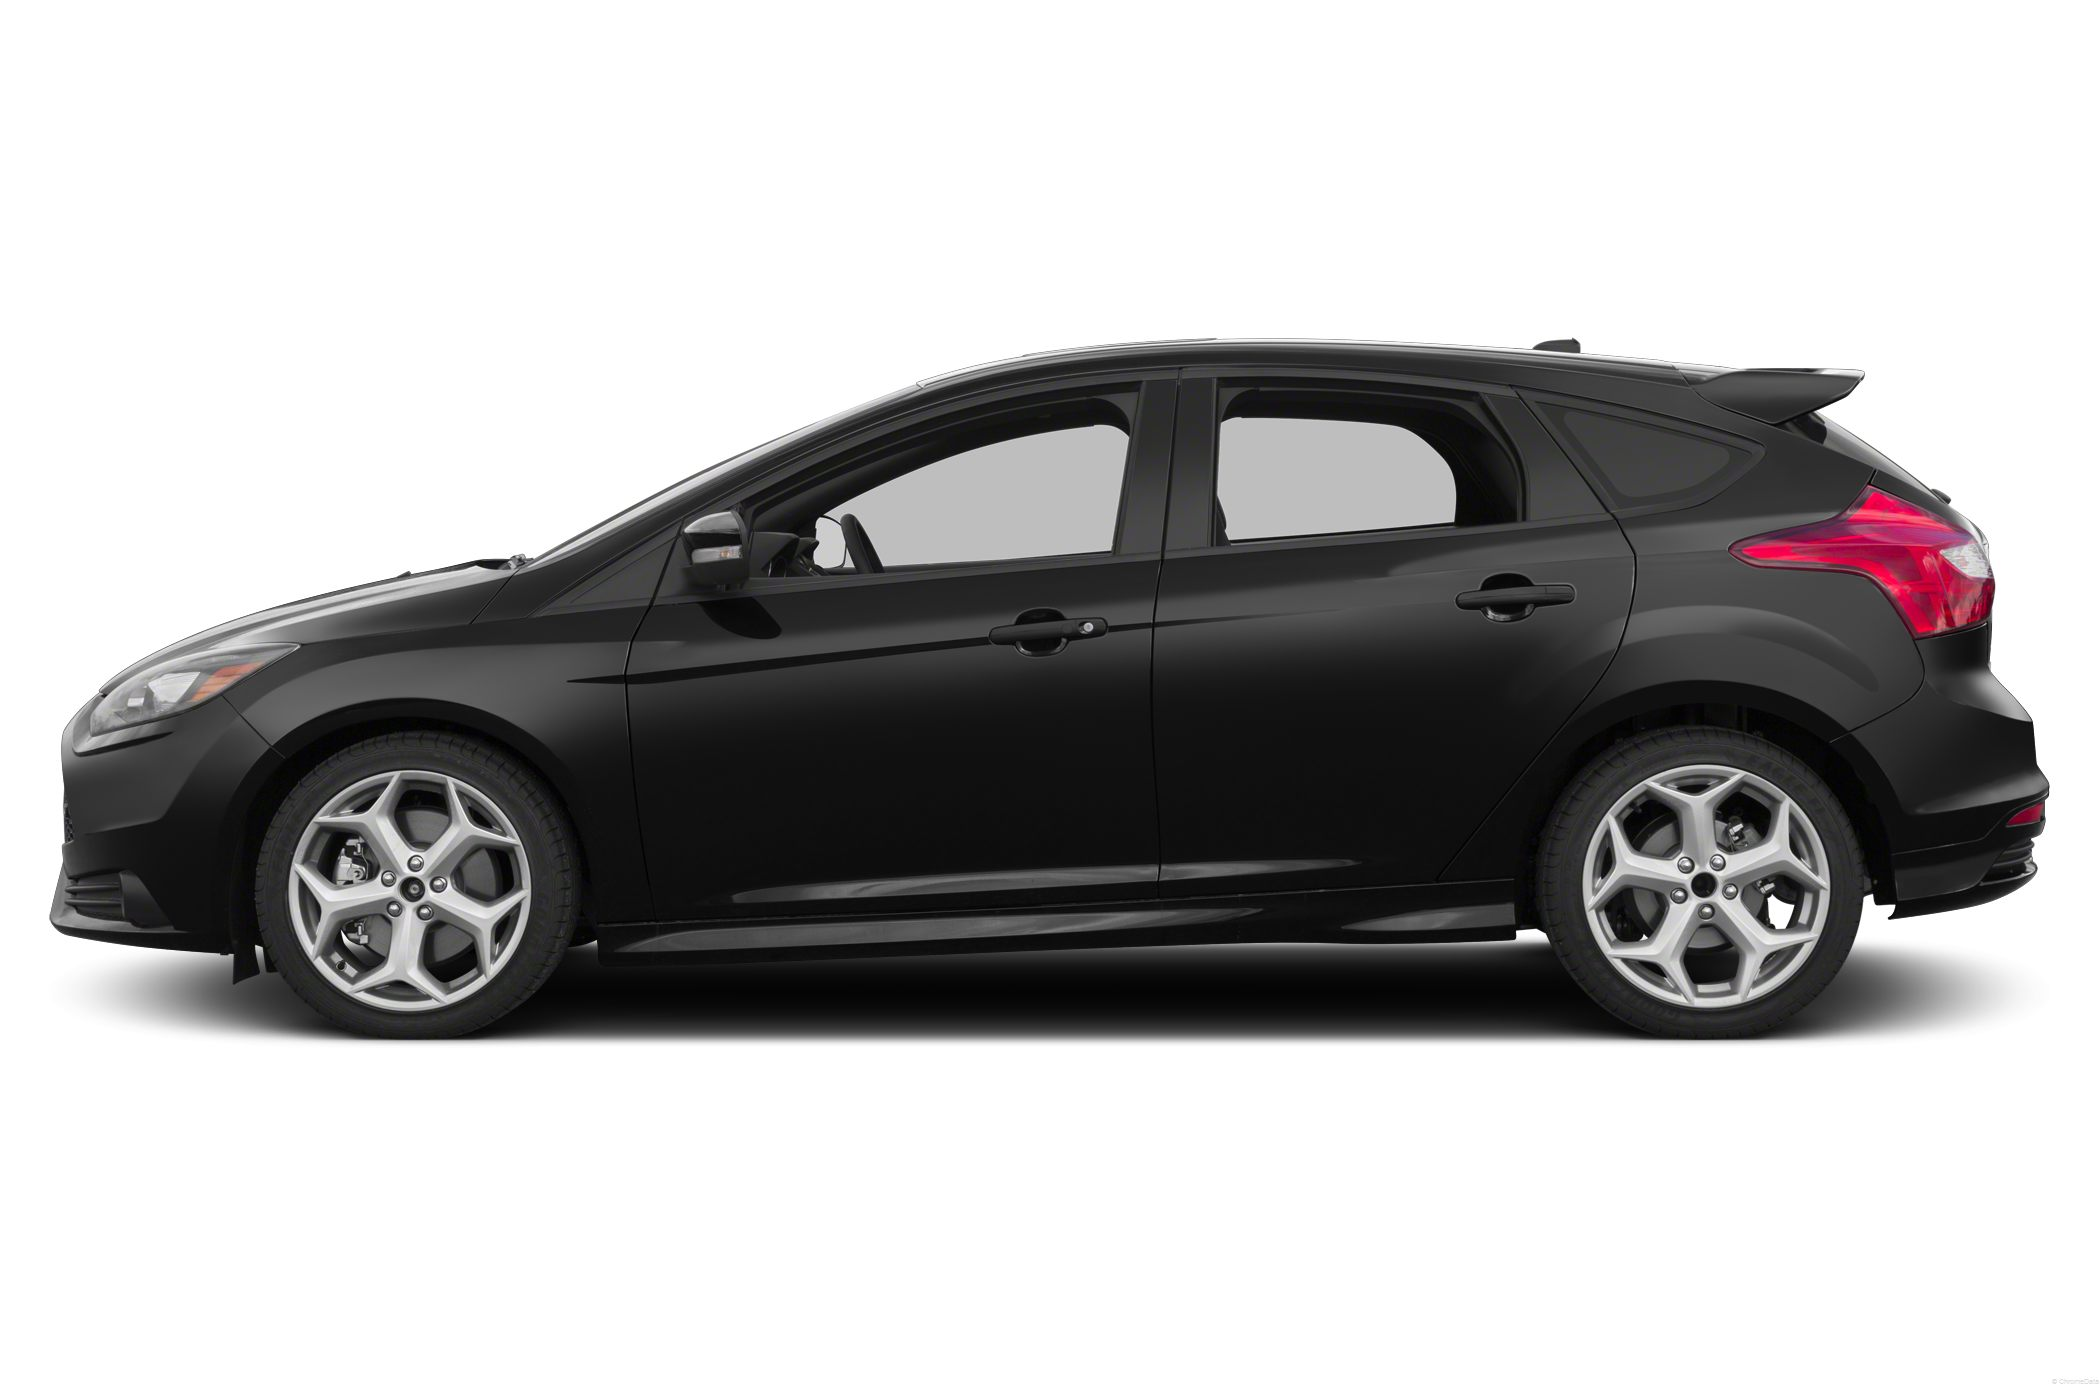 ford focus hatchback ii 2013 photo gallery. Cars Review. Best American Auto & Cars Review